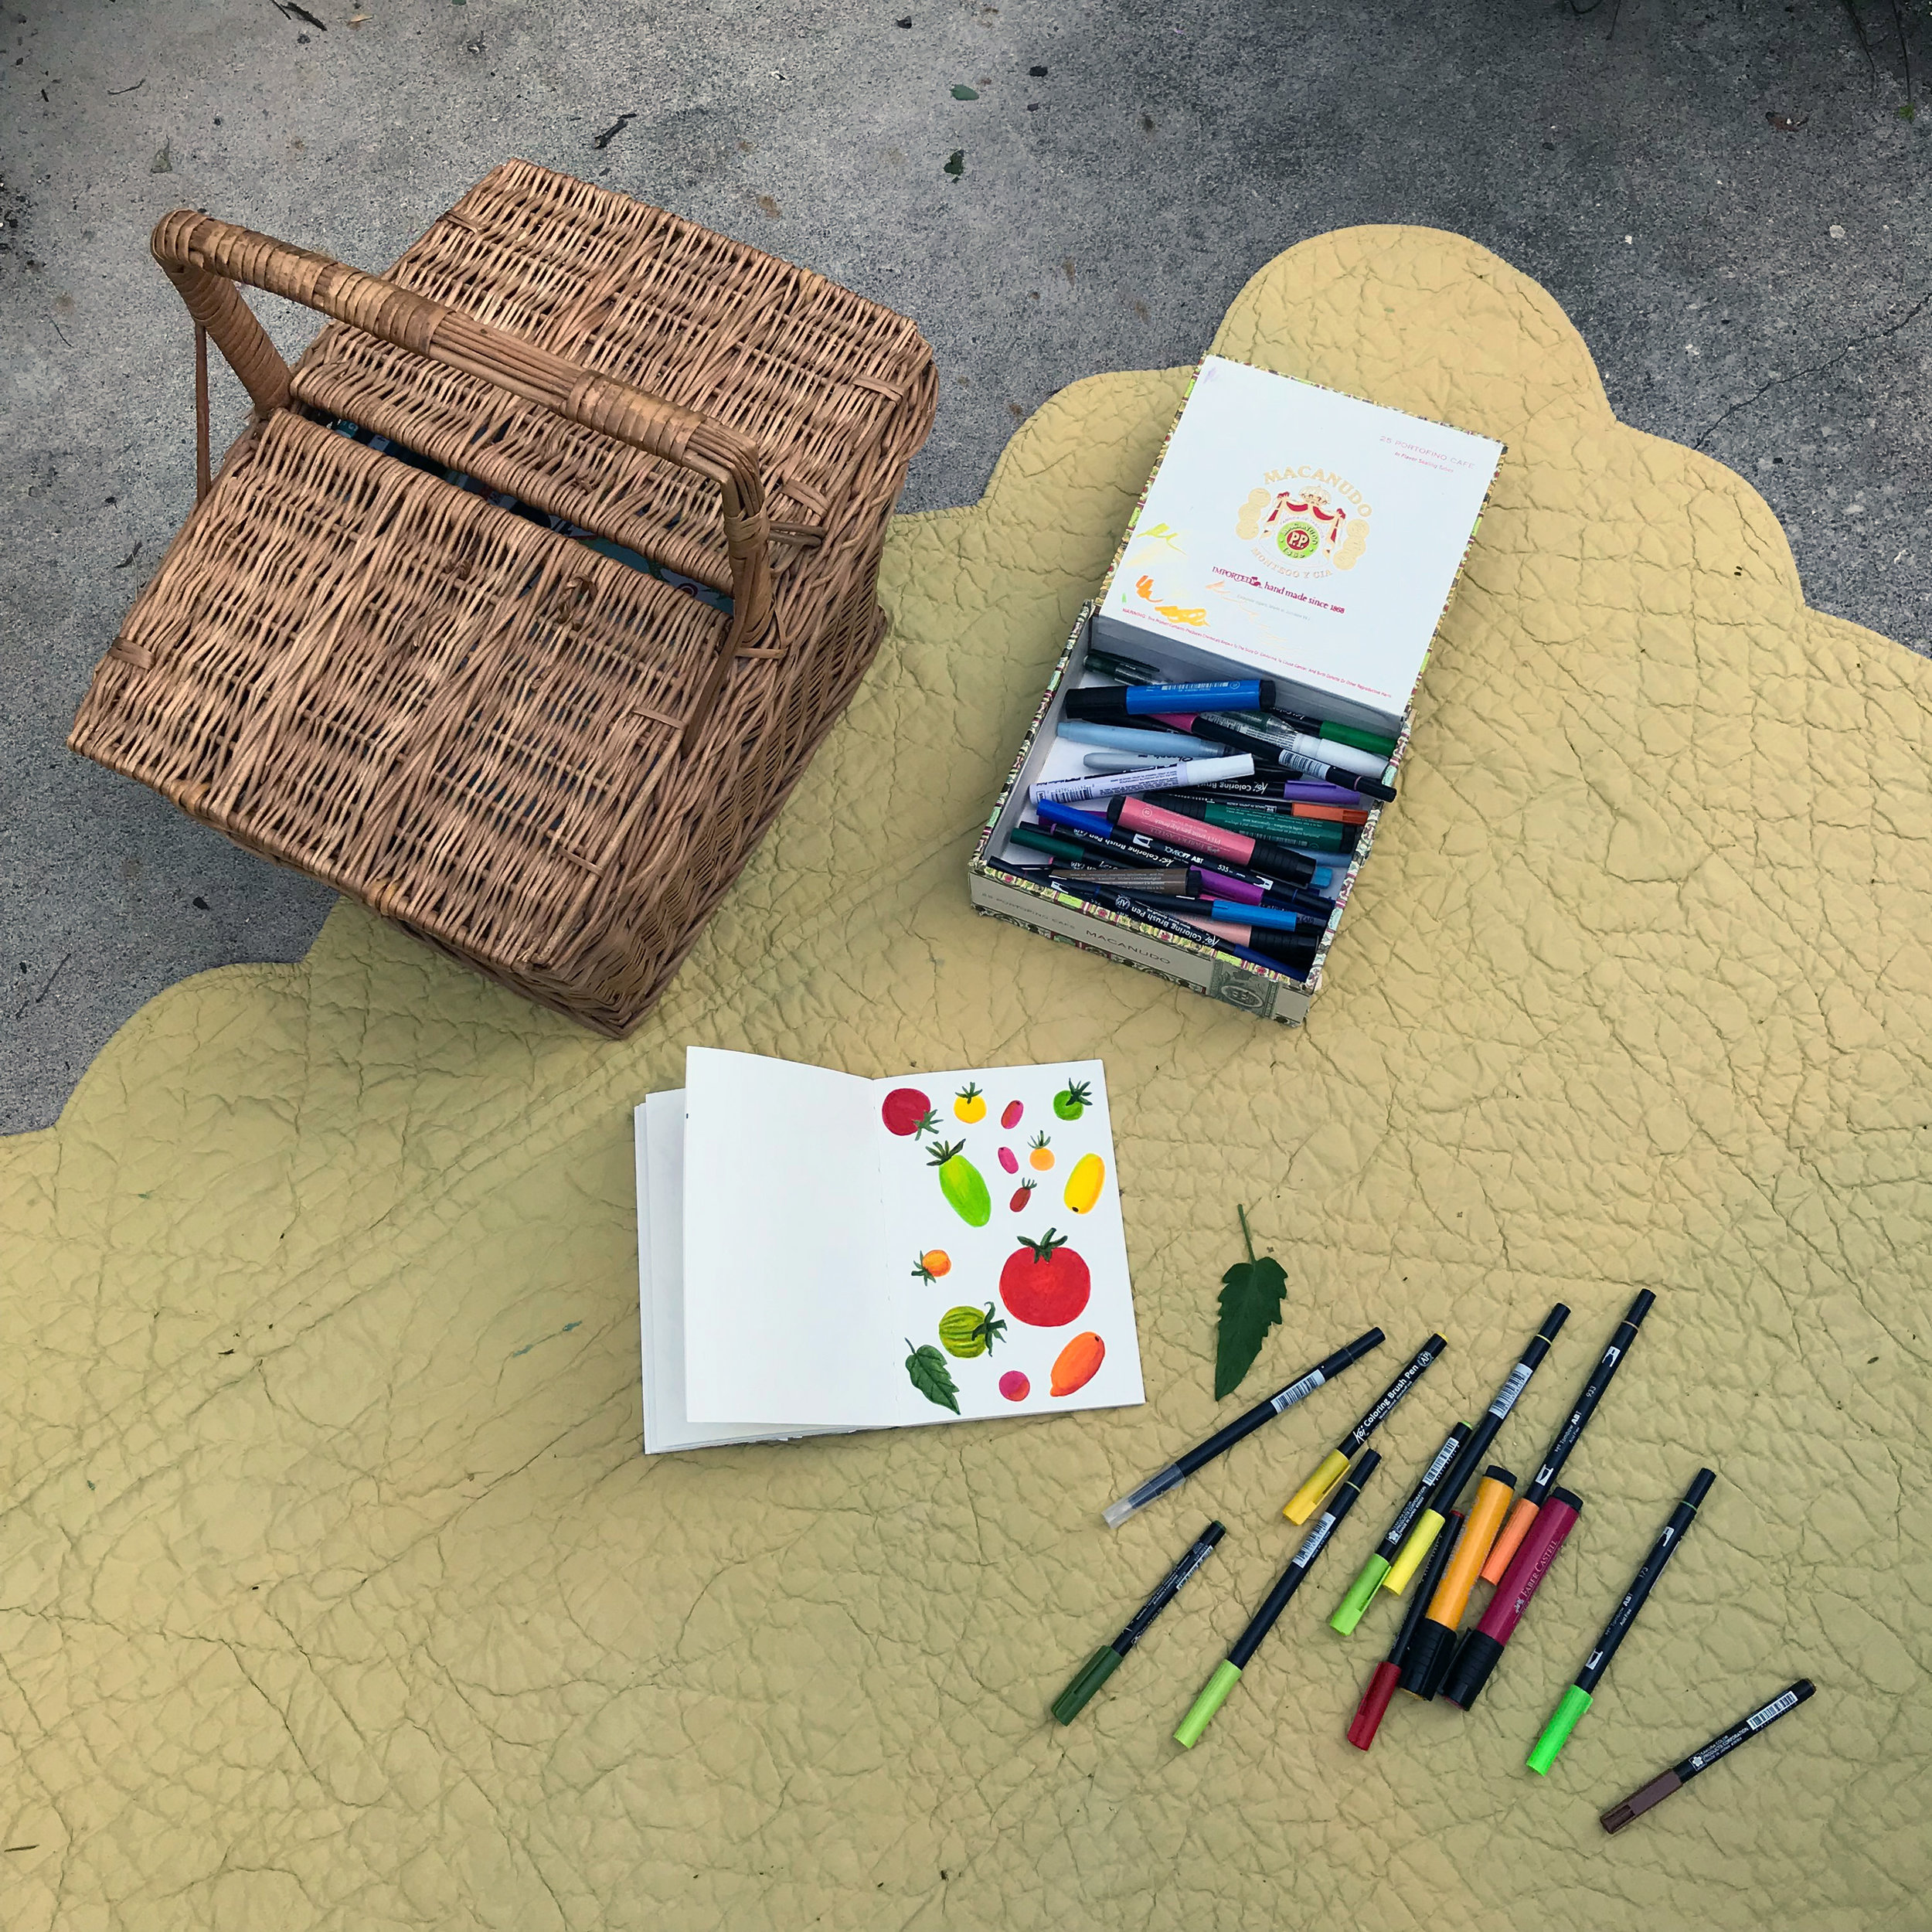 Outdoor Marker Sketches in the Sketchbook of Botanical Watercolor Artist Anne Butera